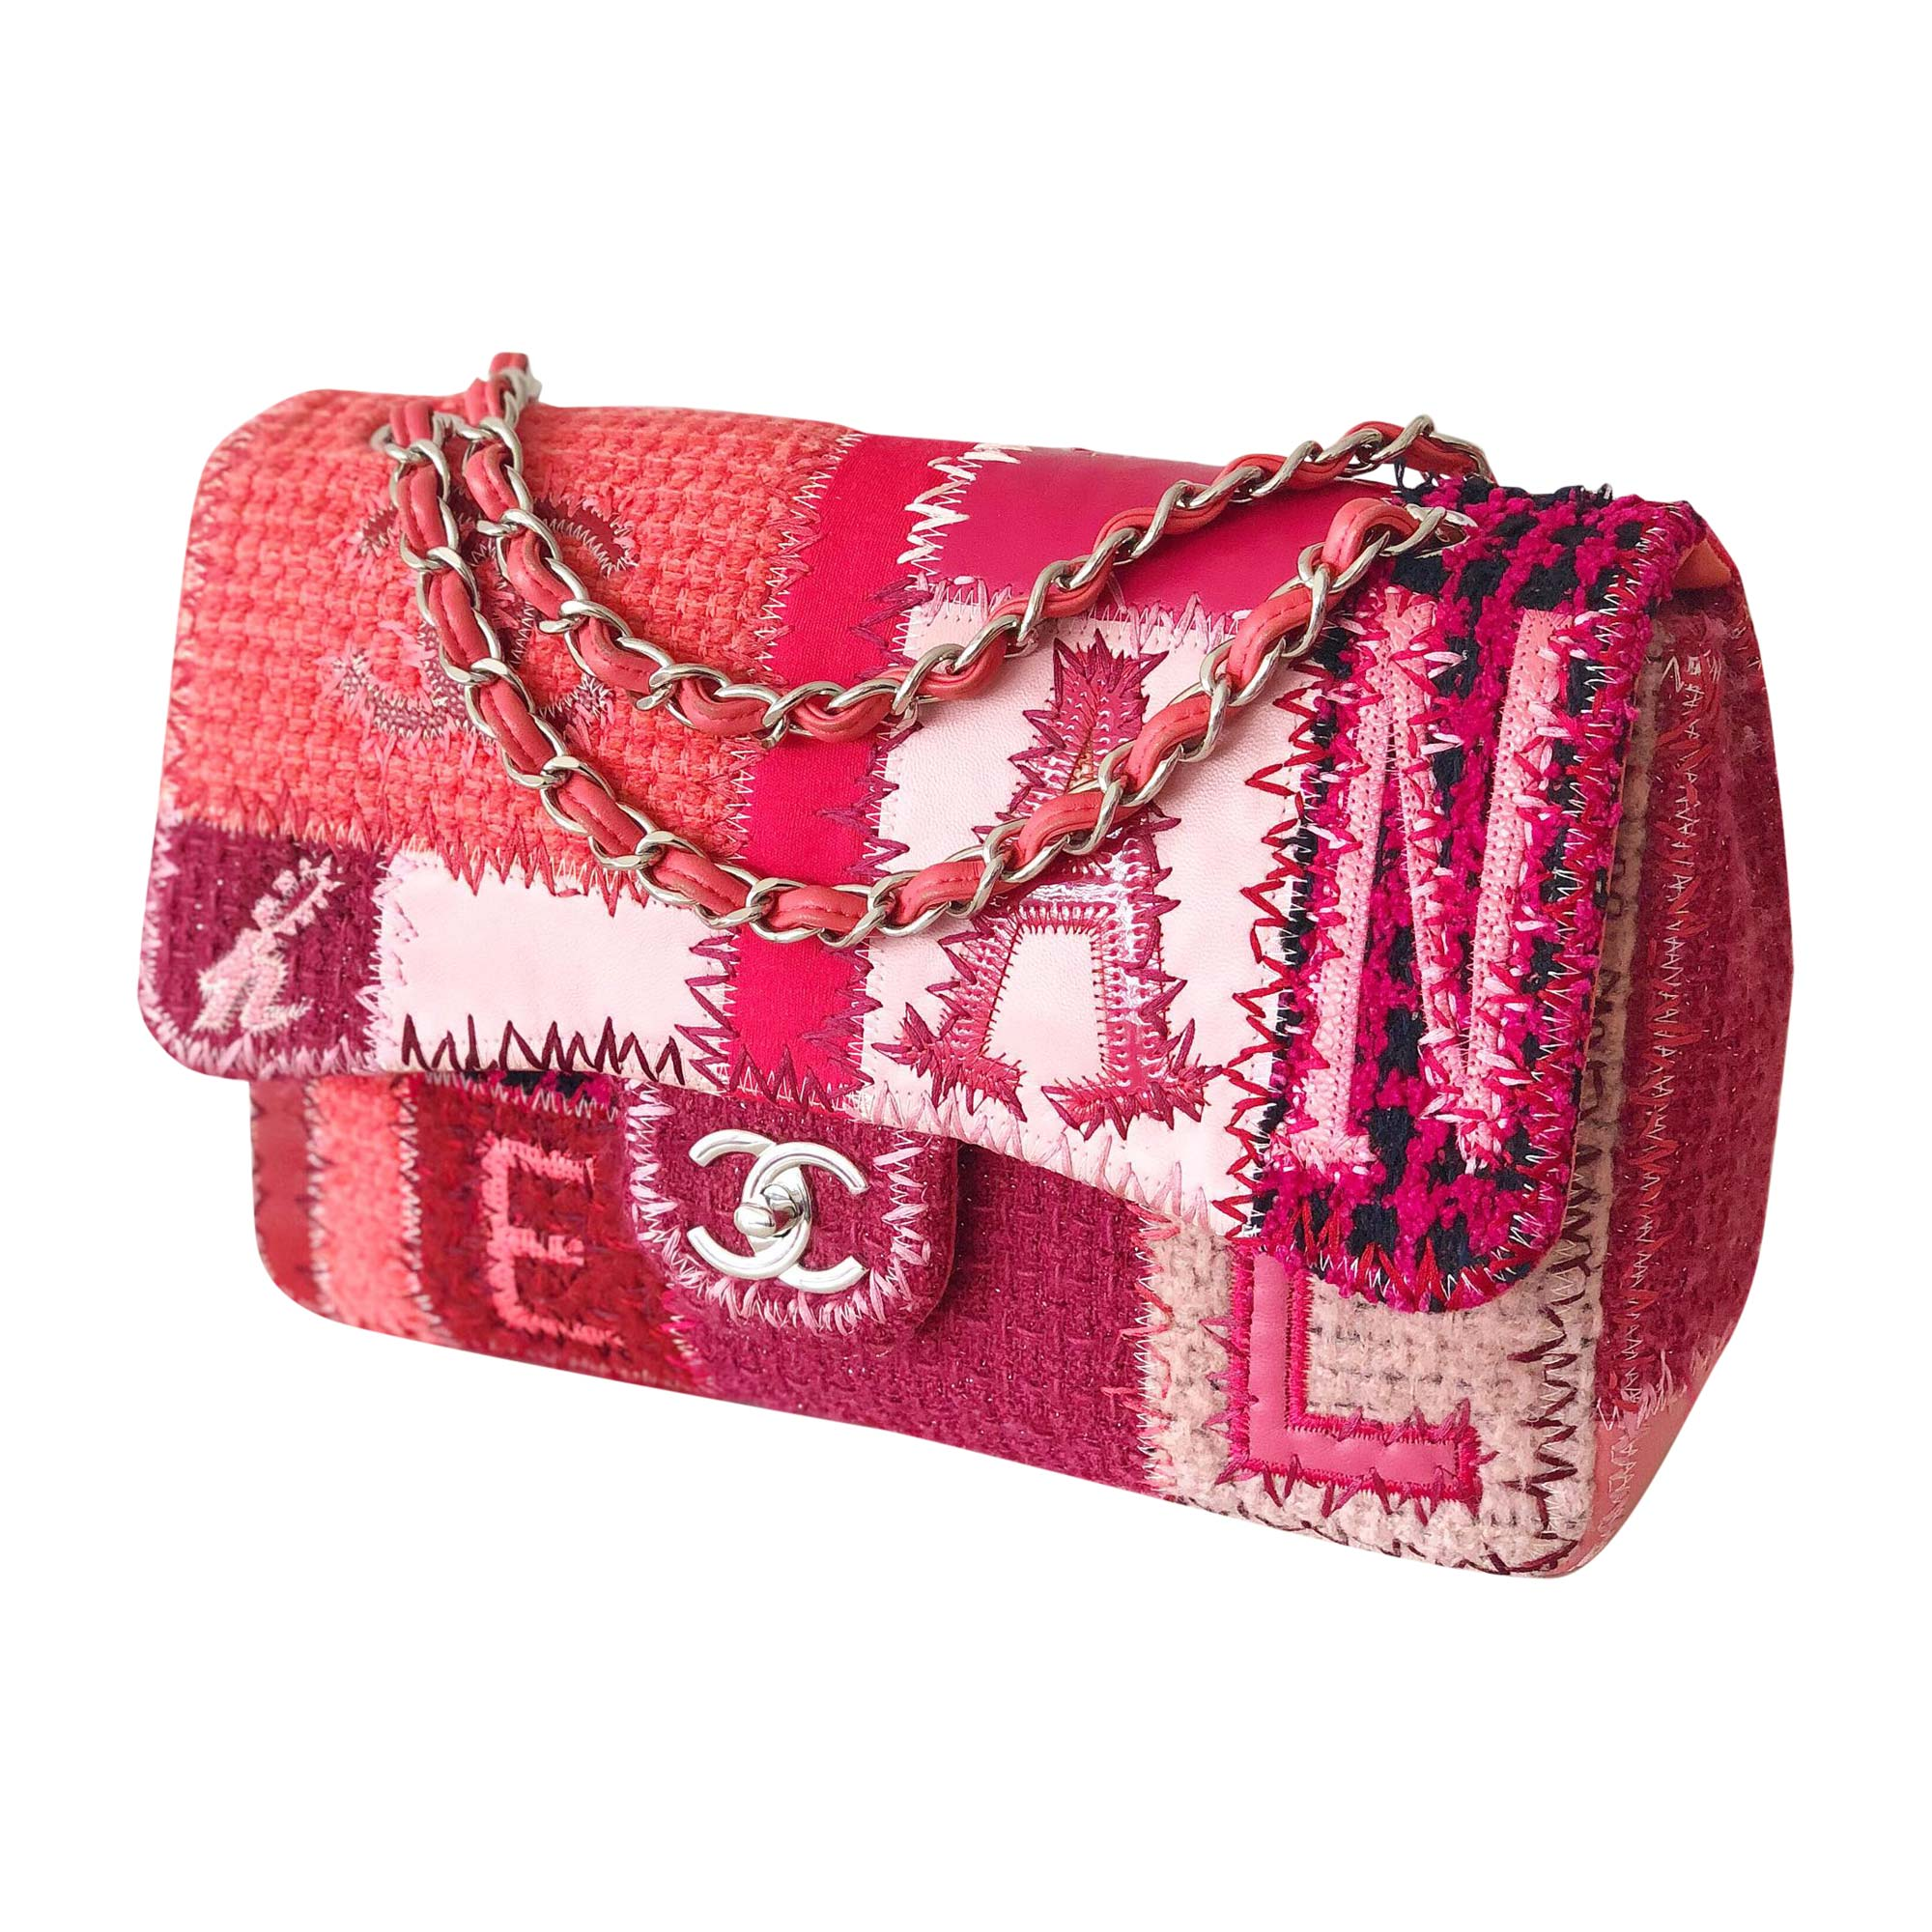 cd675d70dcc Sac à main en tissu CHANEL rose - 7884647